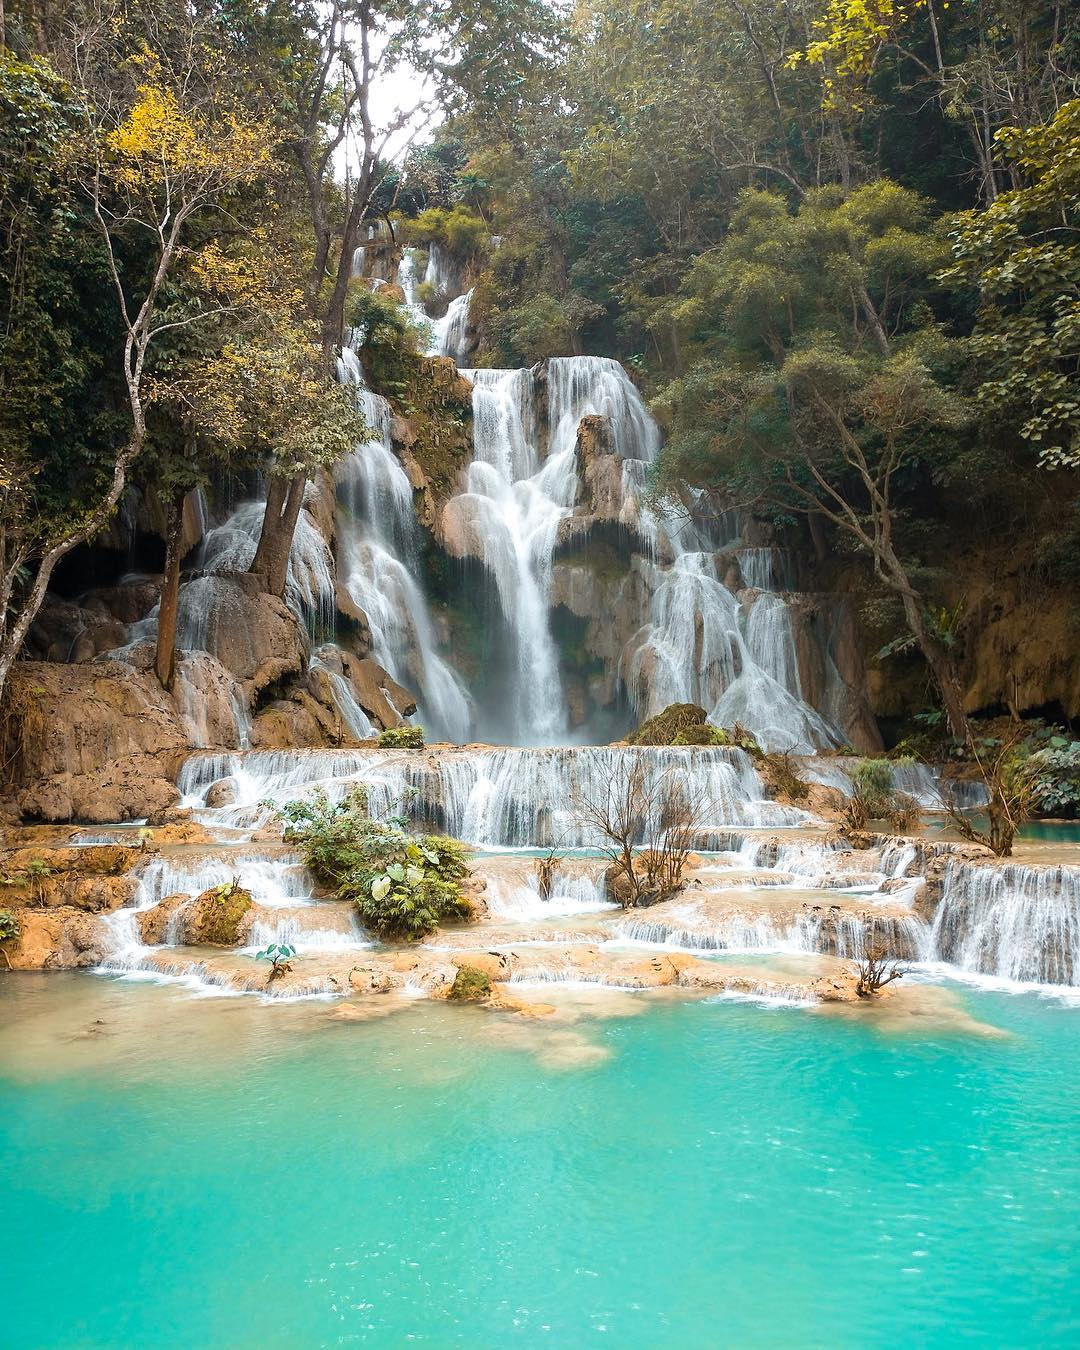 5 Best Backpacking Countries in the World - Laos